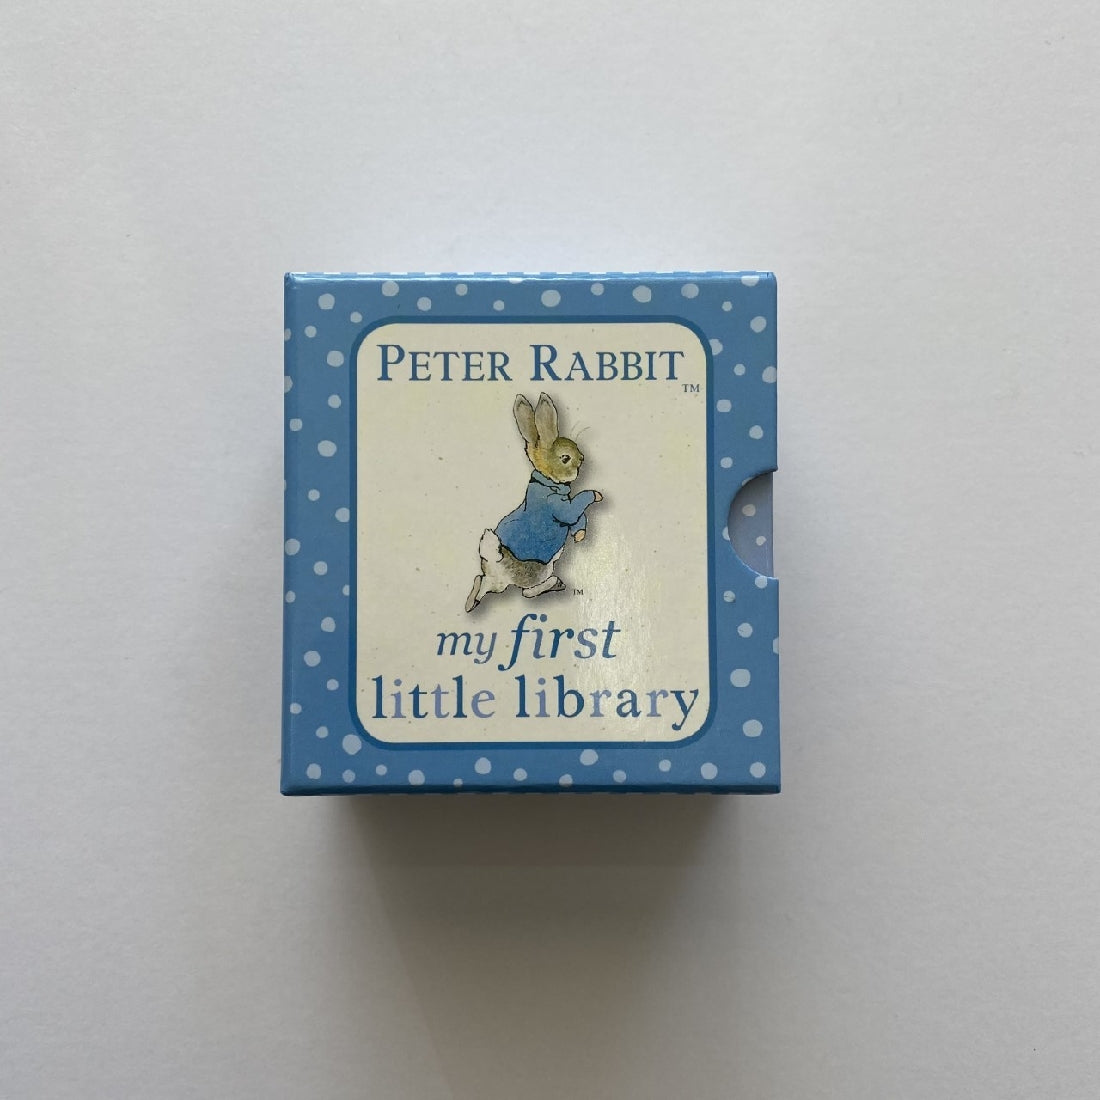 Peter Rabbit I My First Little Library